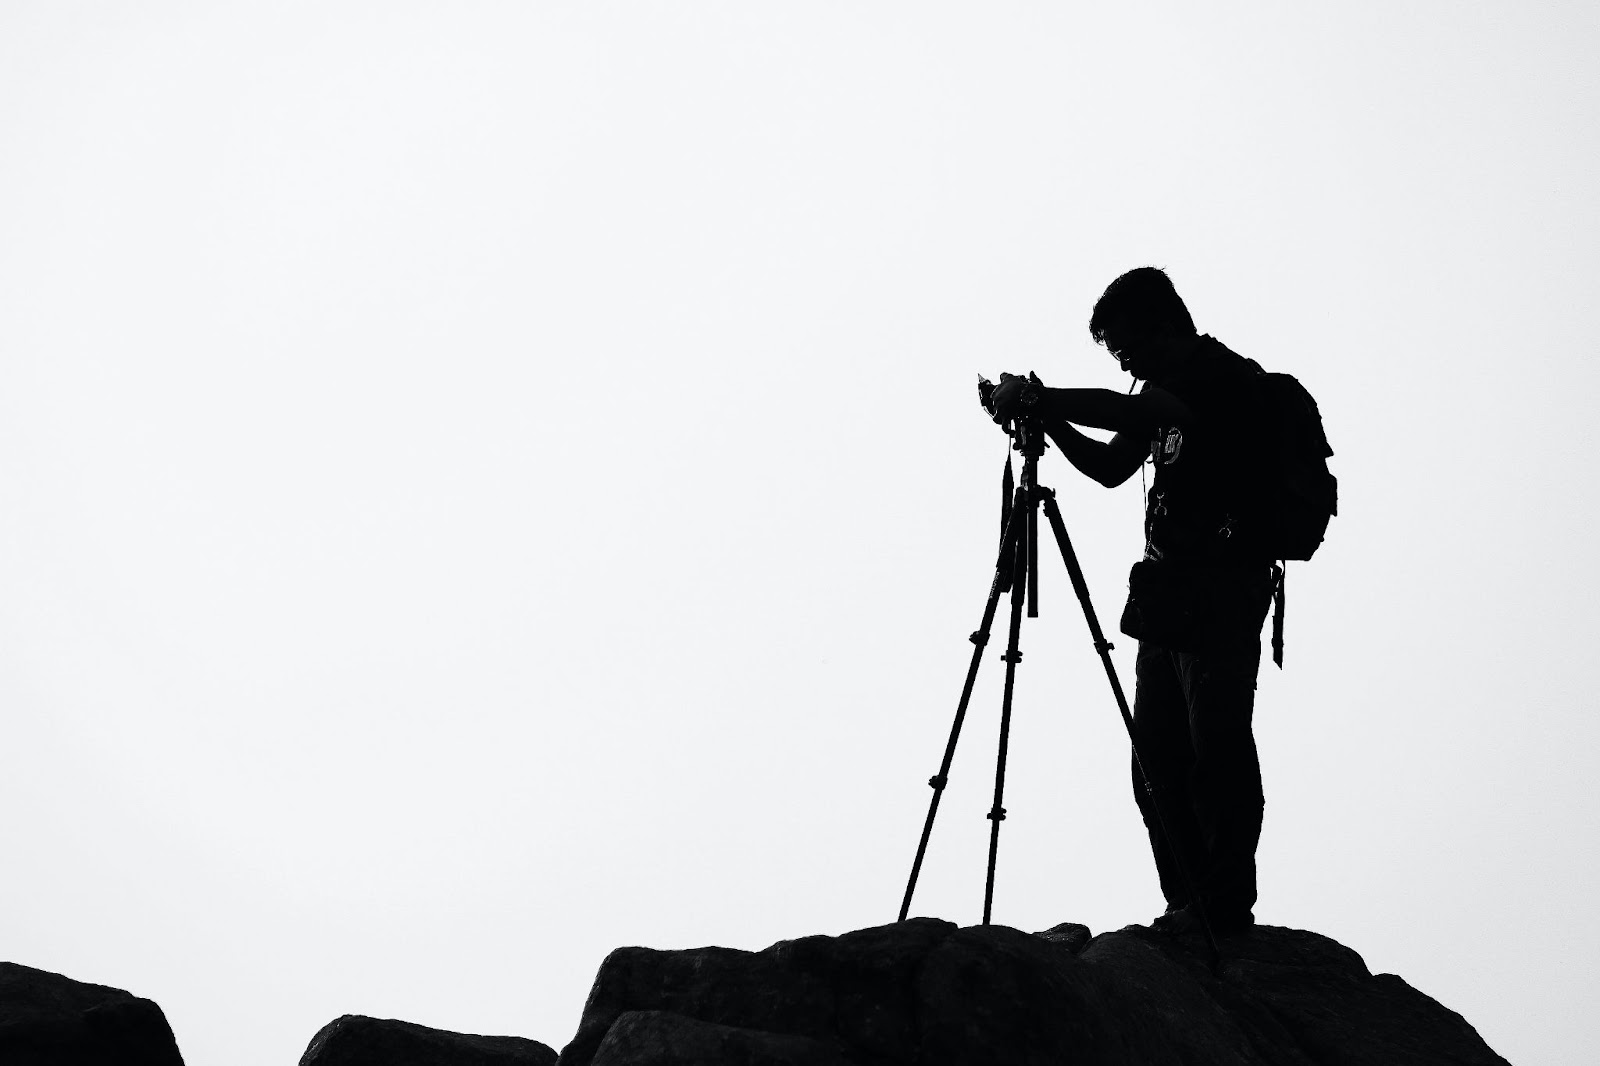 This picture is used in an article about camera gear rental insurance. A photographer is pictured filming on-top of a mountain.